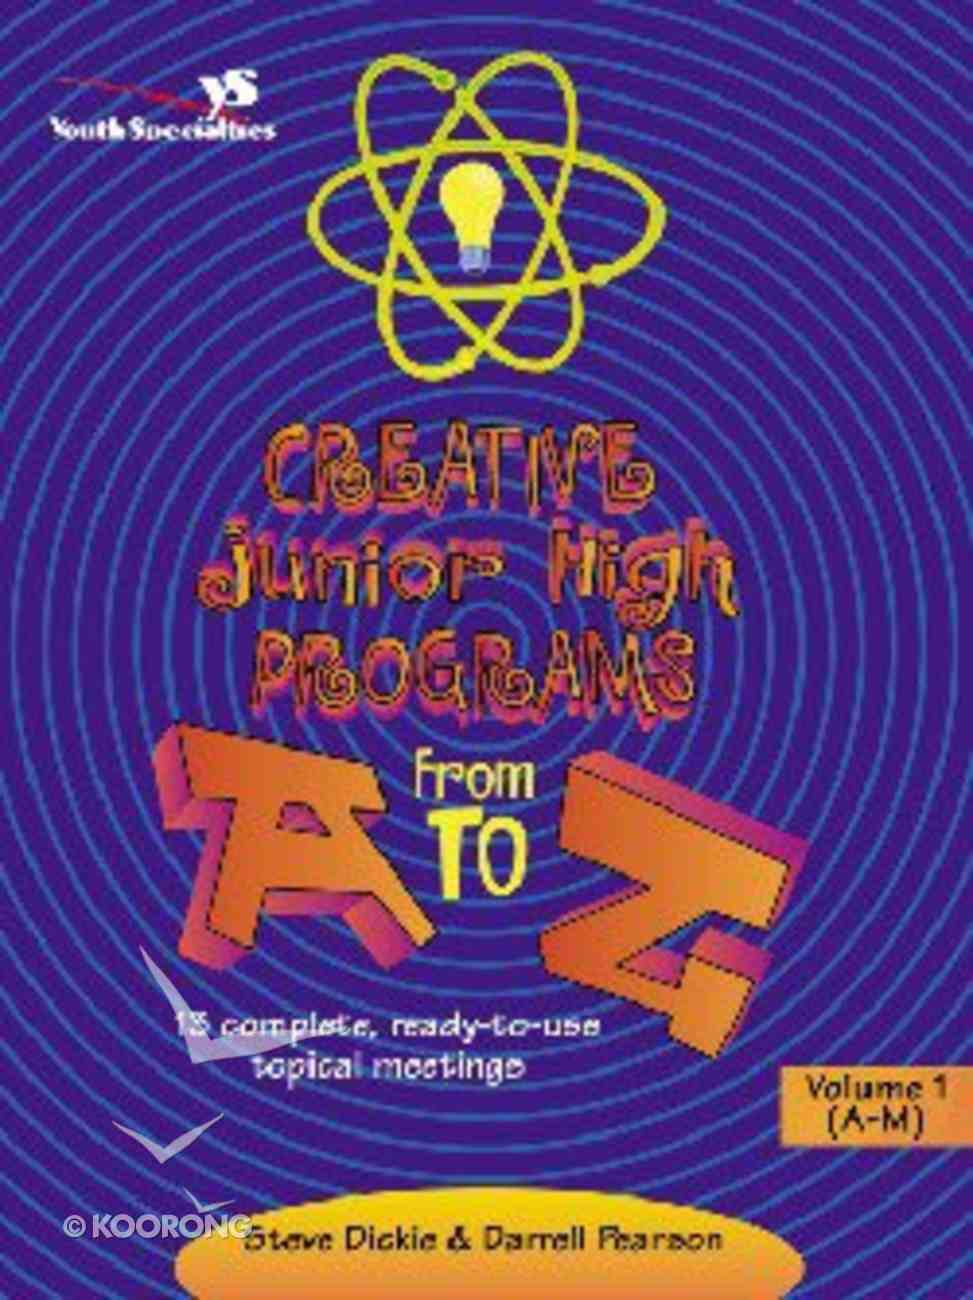 Creative Junior High Programs From a to Z (Vol 1) Paperback